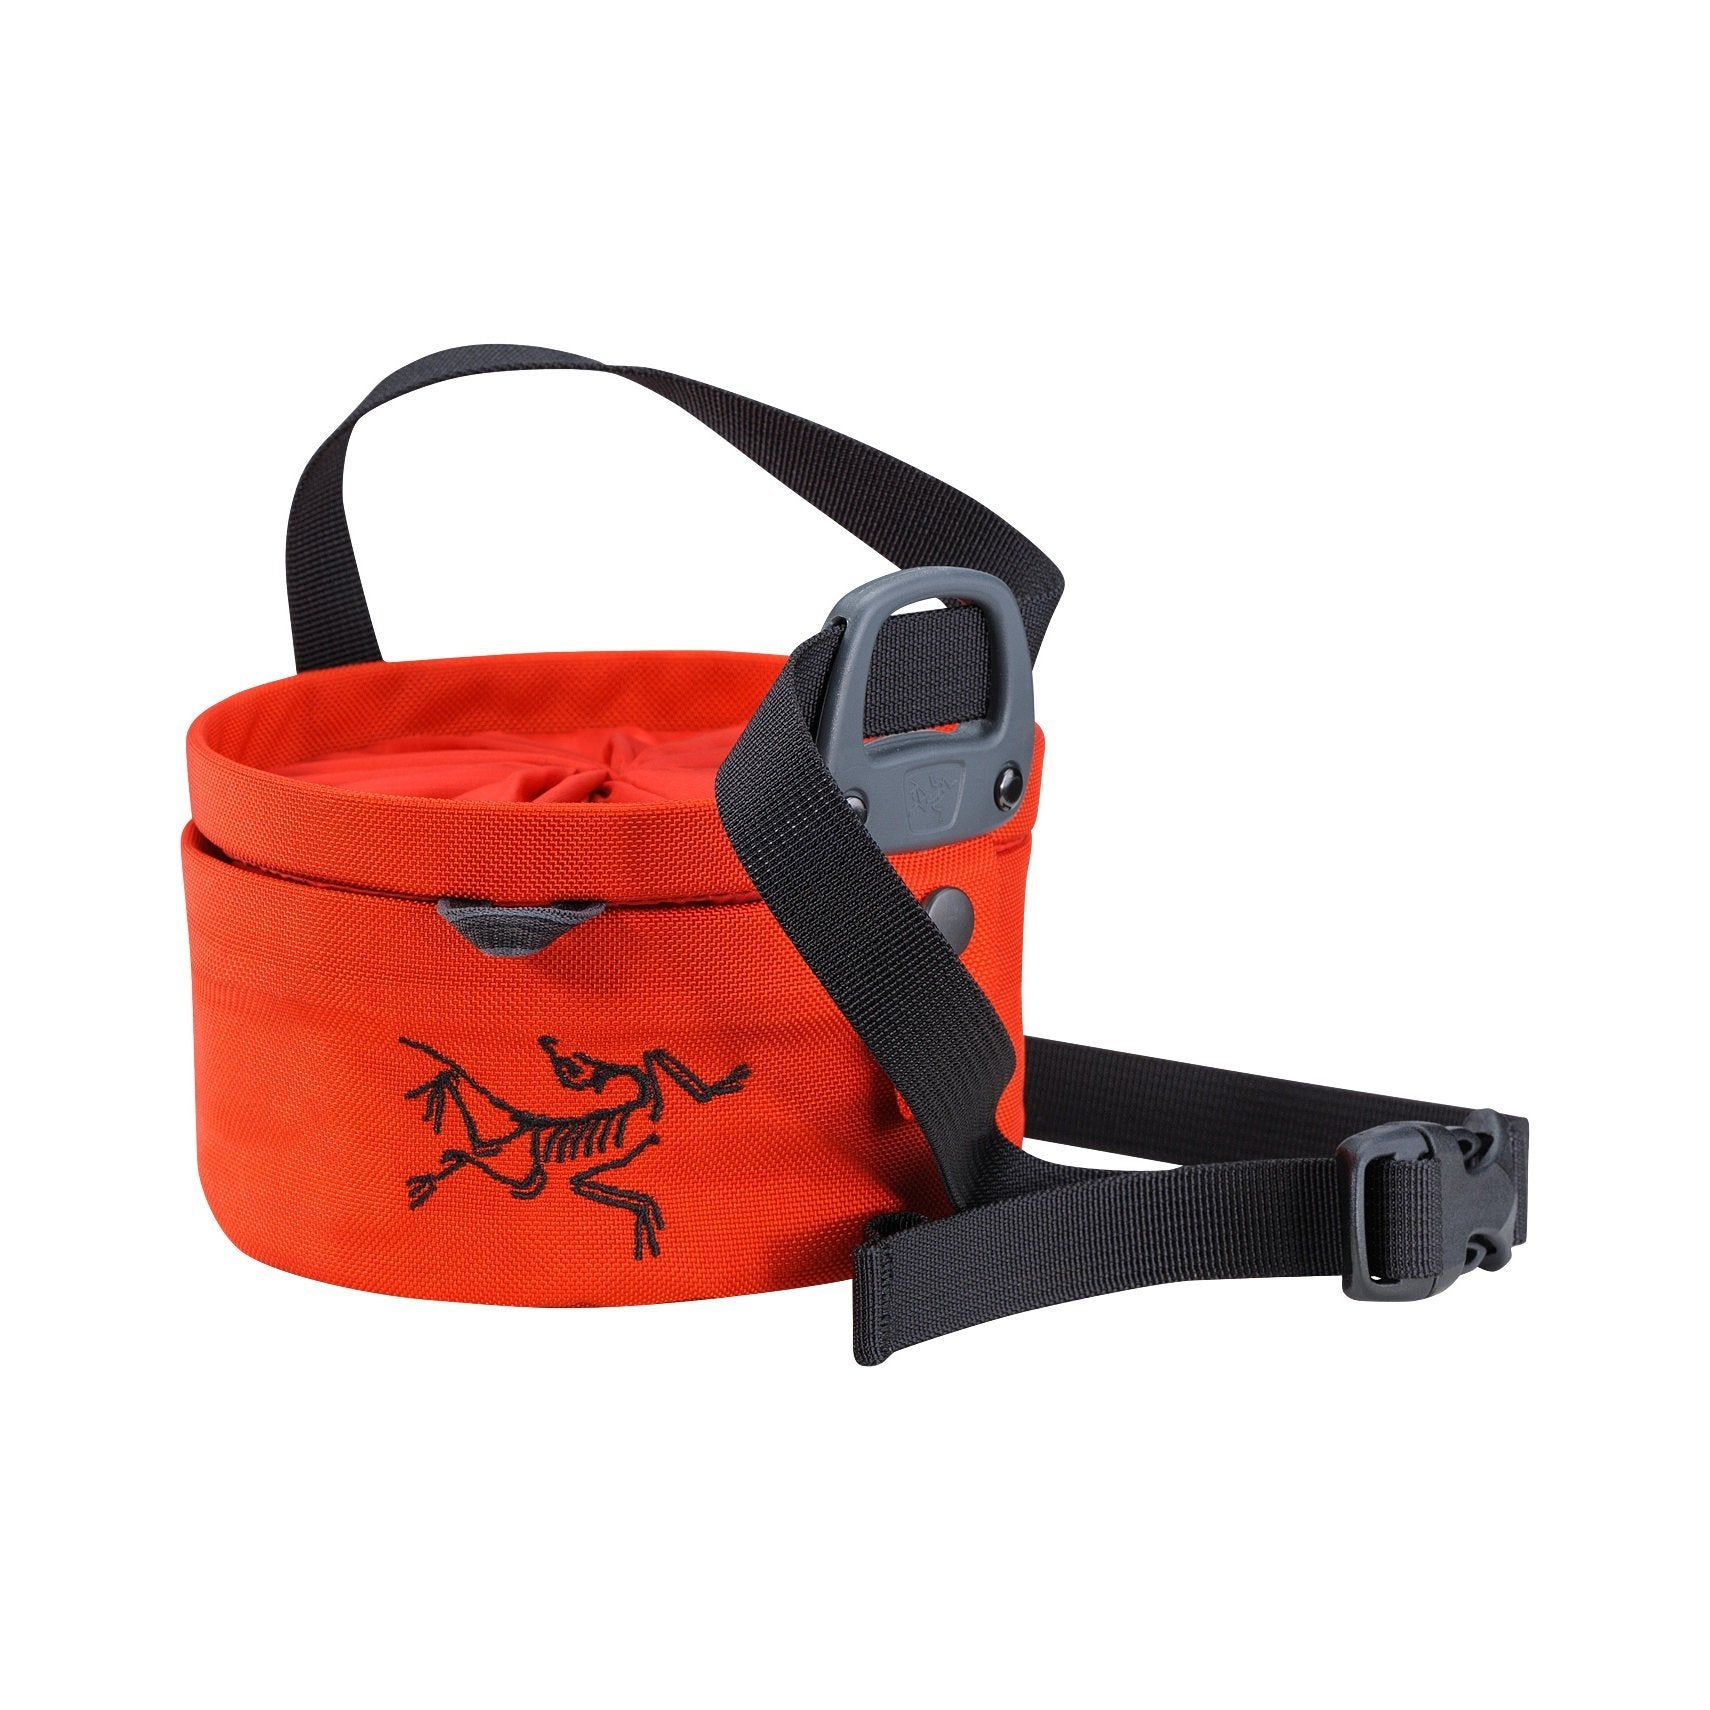 ArcTeryx Aperture climbing Chalk Bag (Large), in red